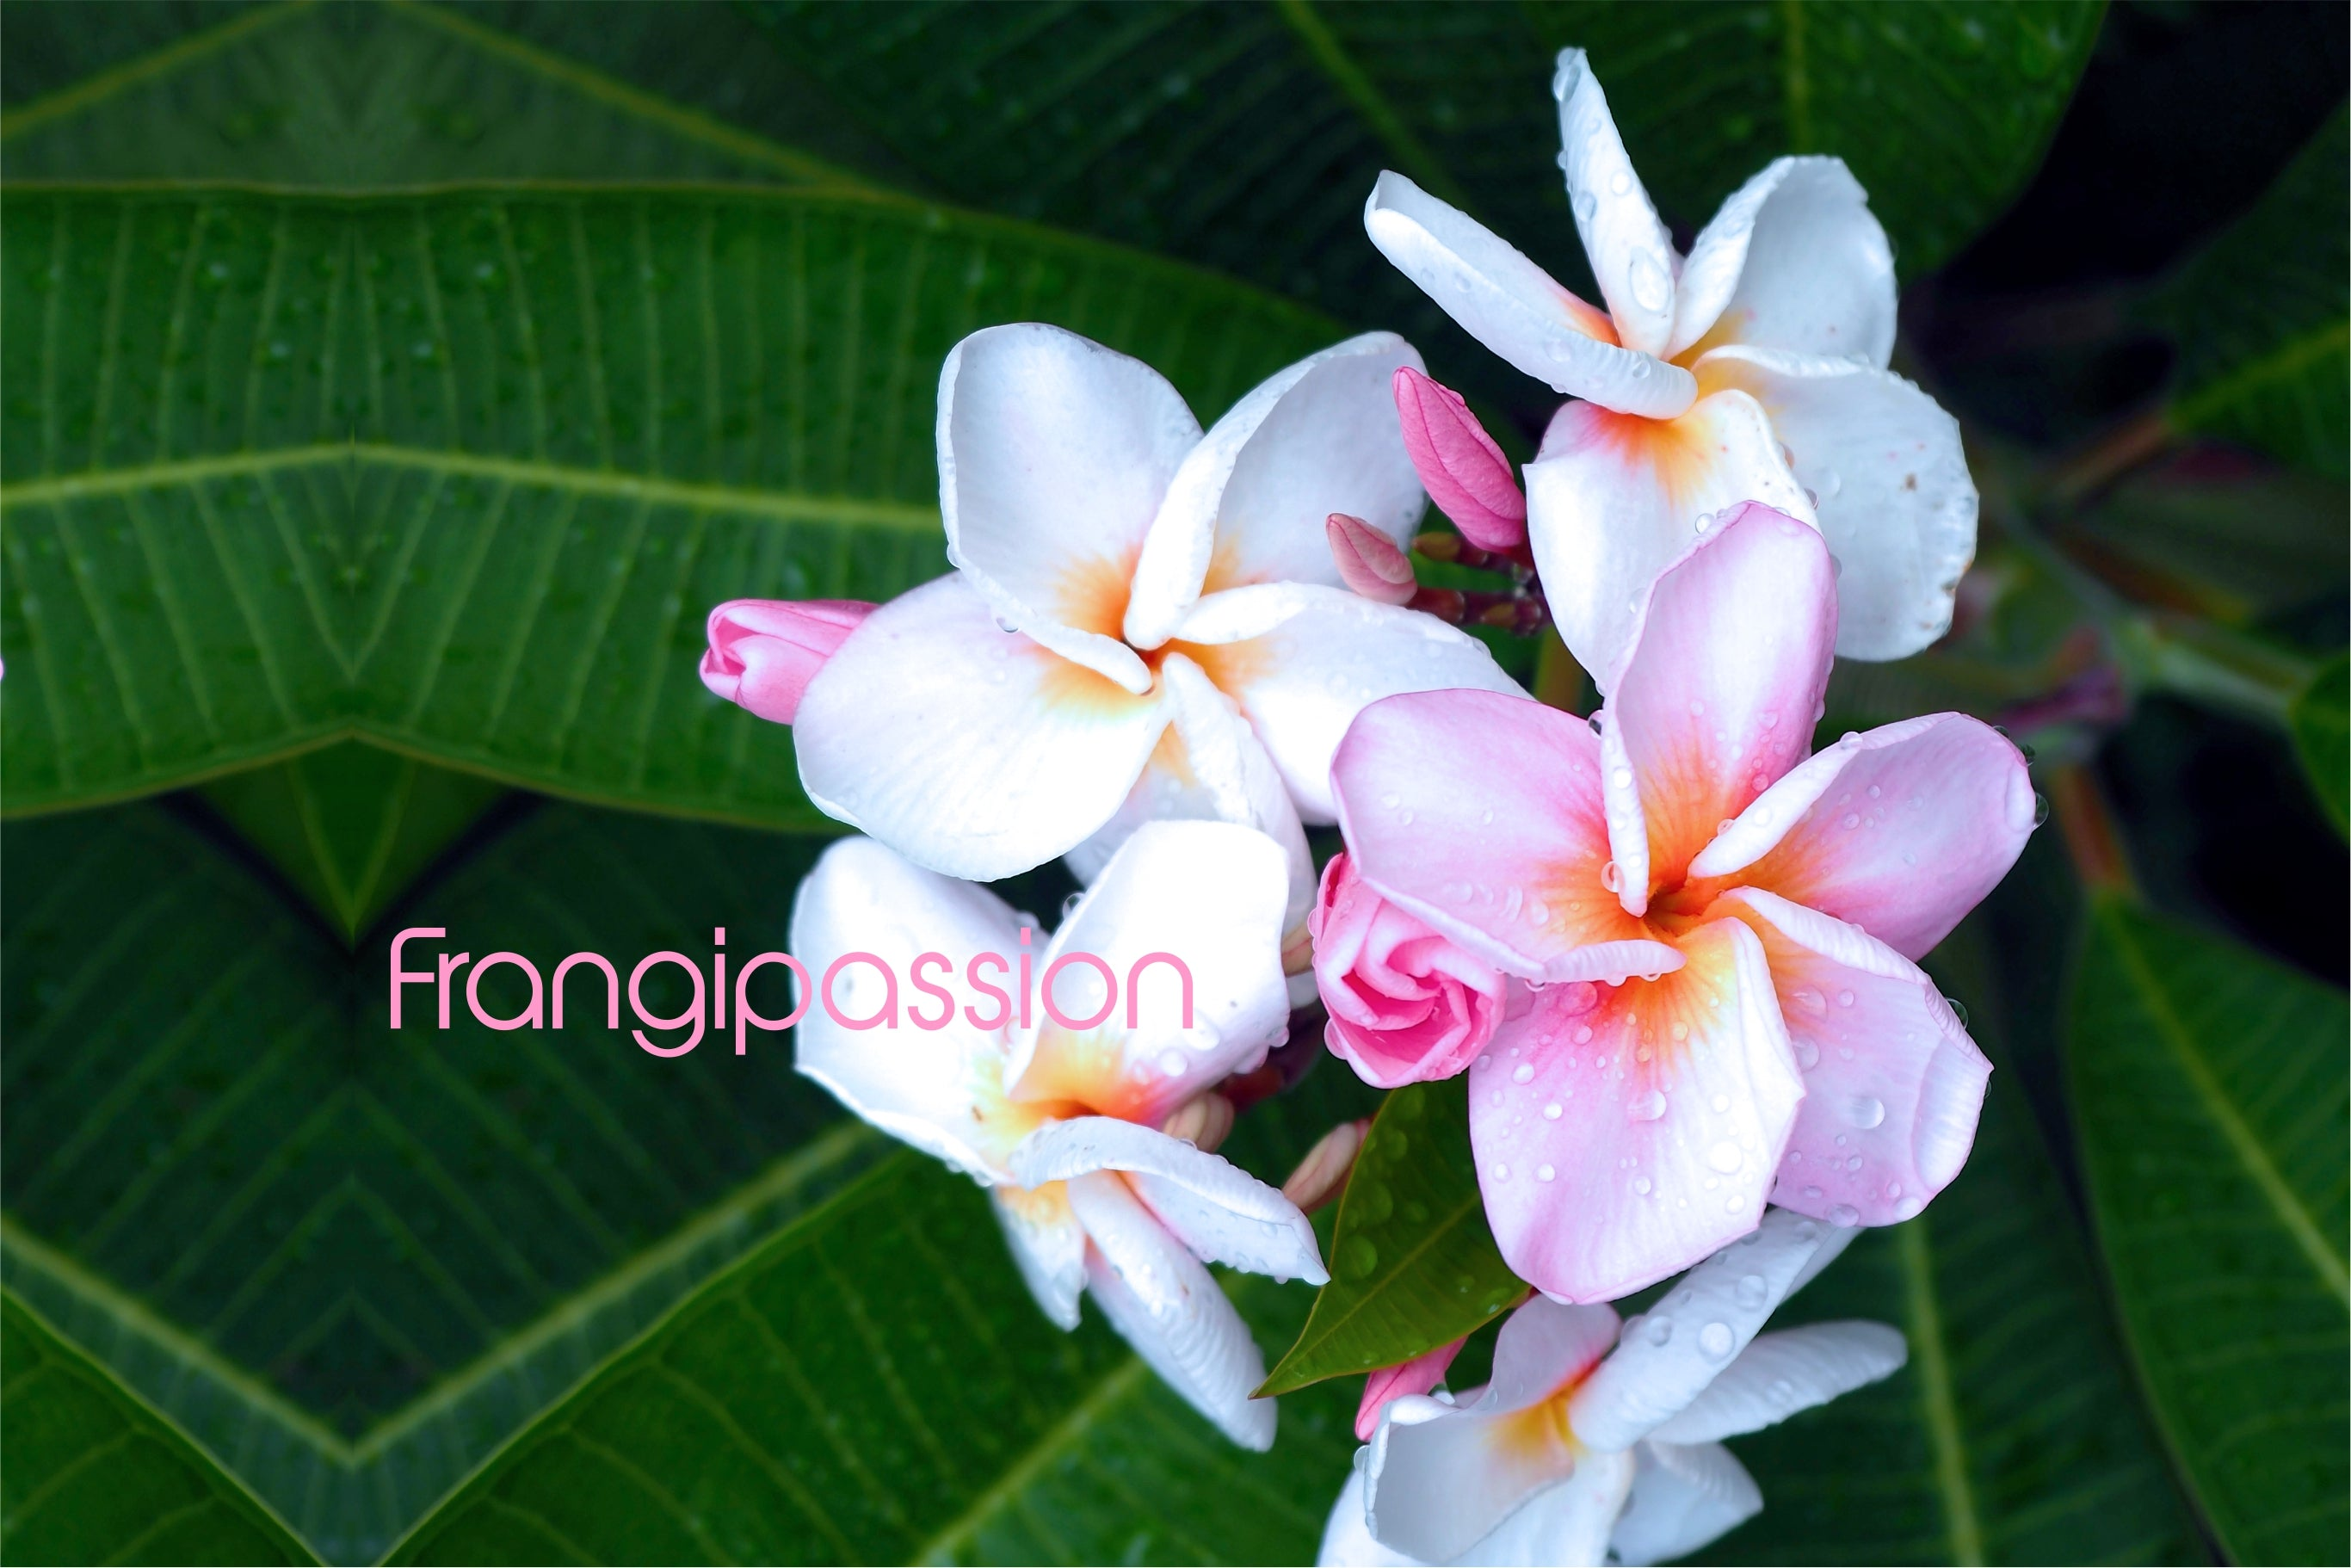 Frangipassion - all styles in BIKINIS and ONEPIECES